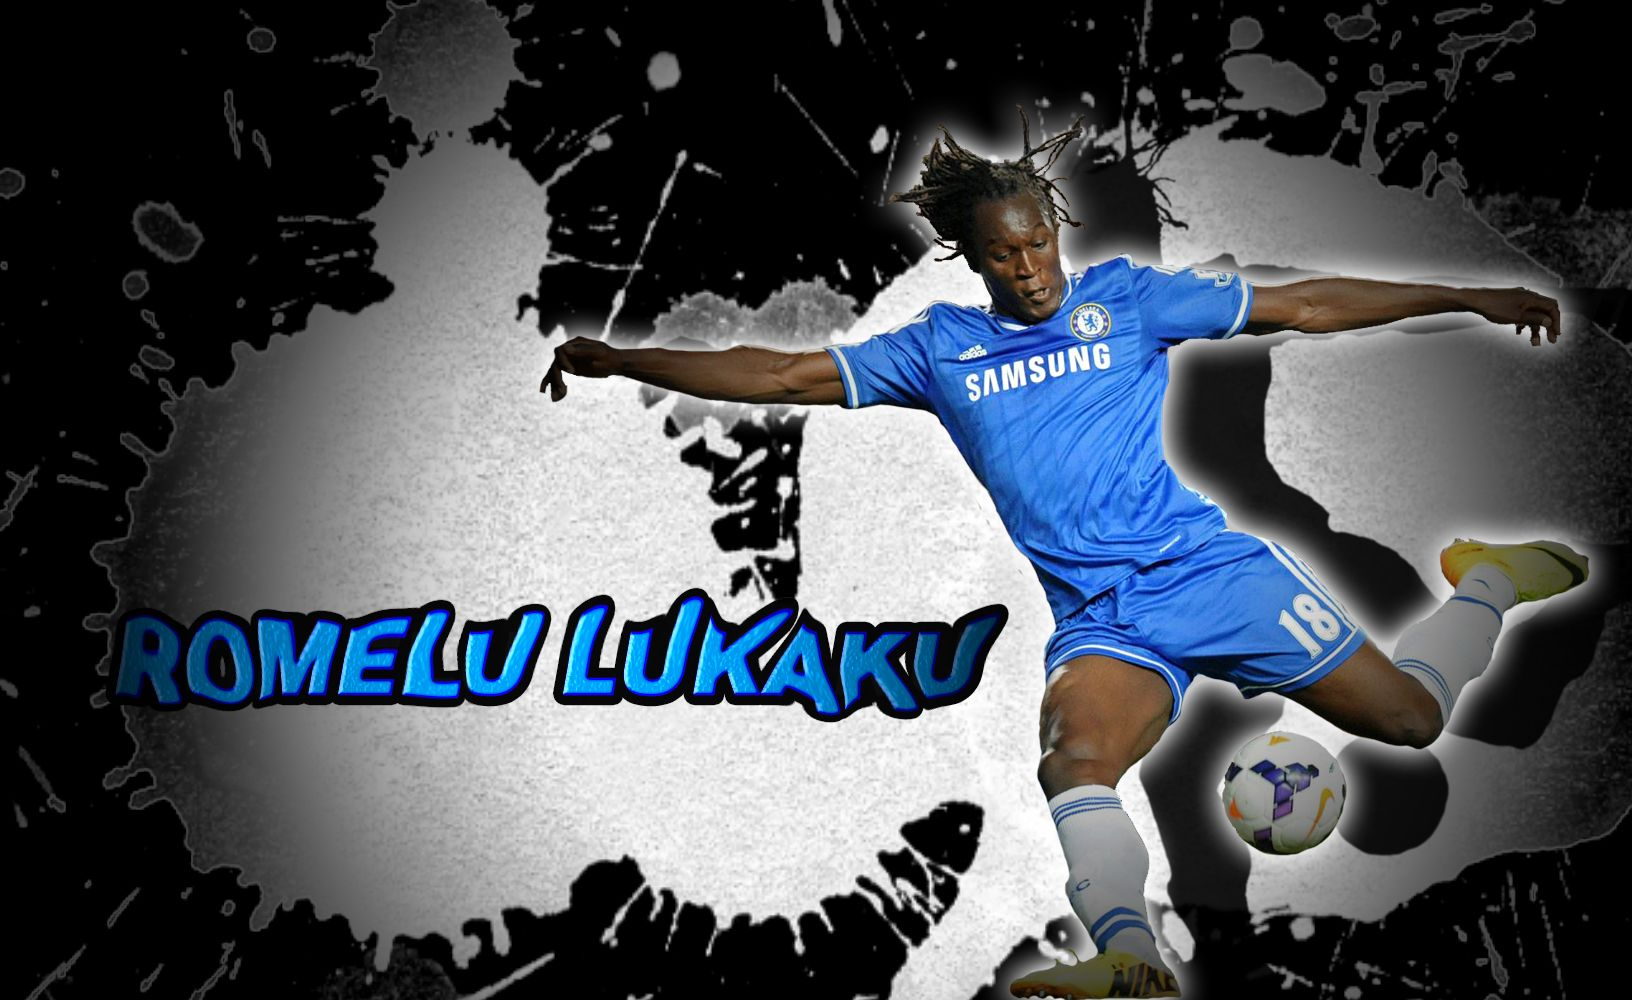 Romelu Lukaku Wallpaper Find Best Latest Romelu Lukaku Wallpaper For